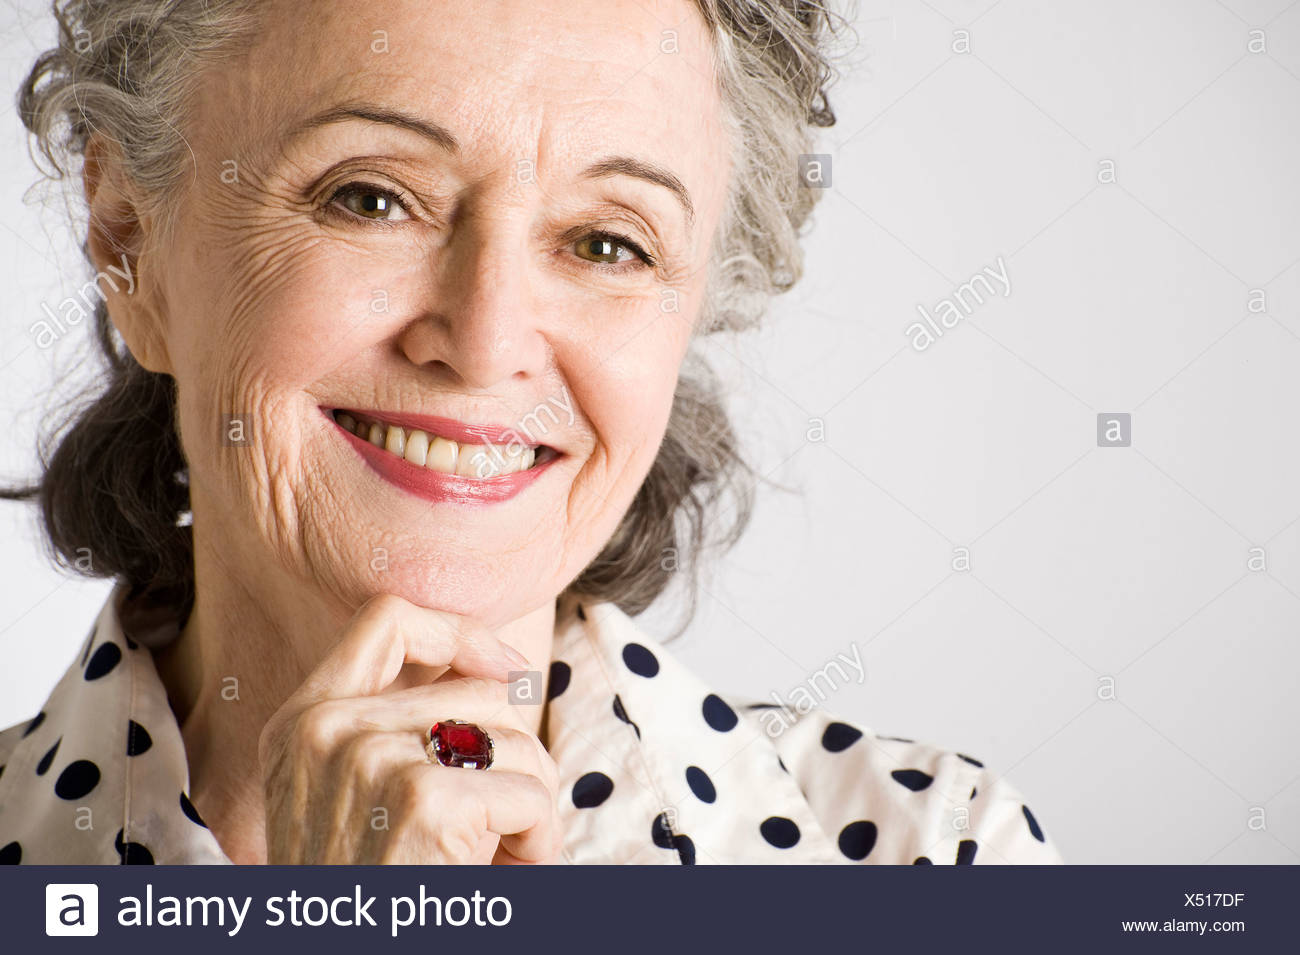 Portrait of senior woman, hand on chin, smiling - Stock Image